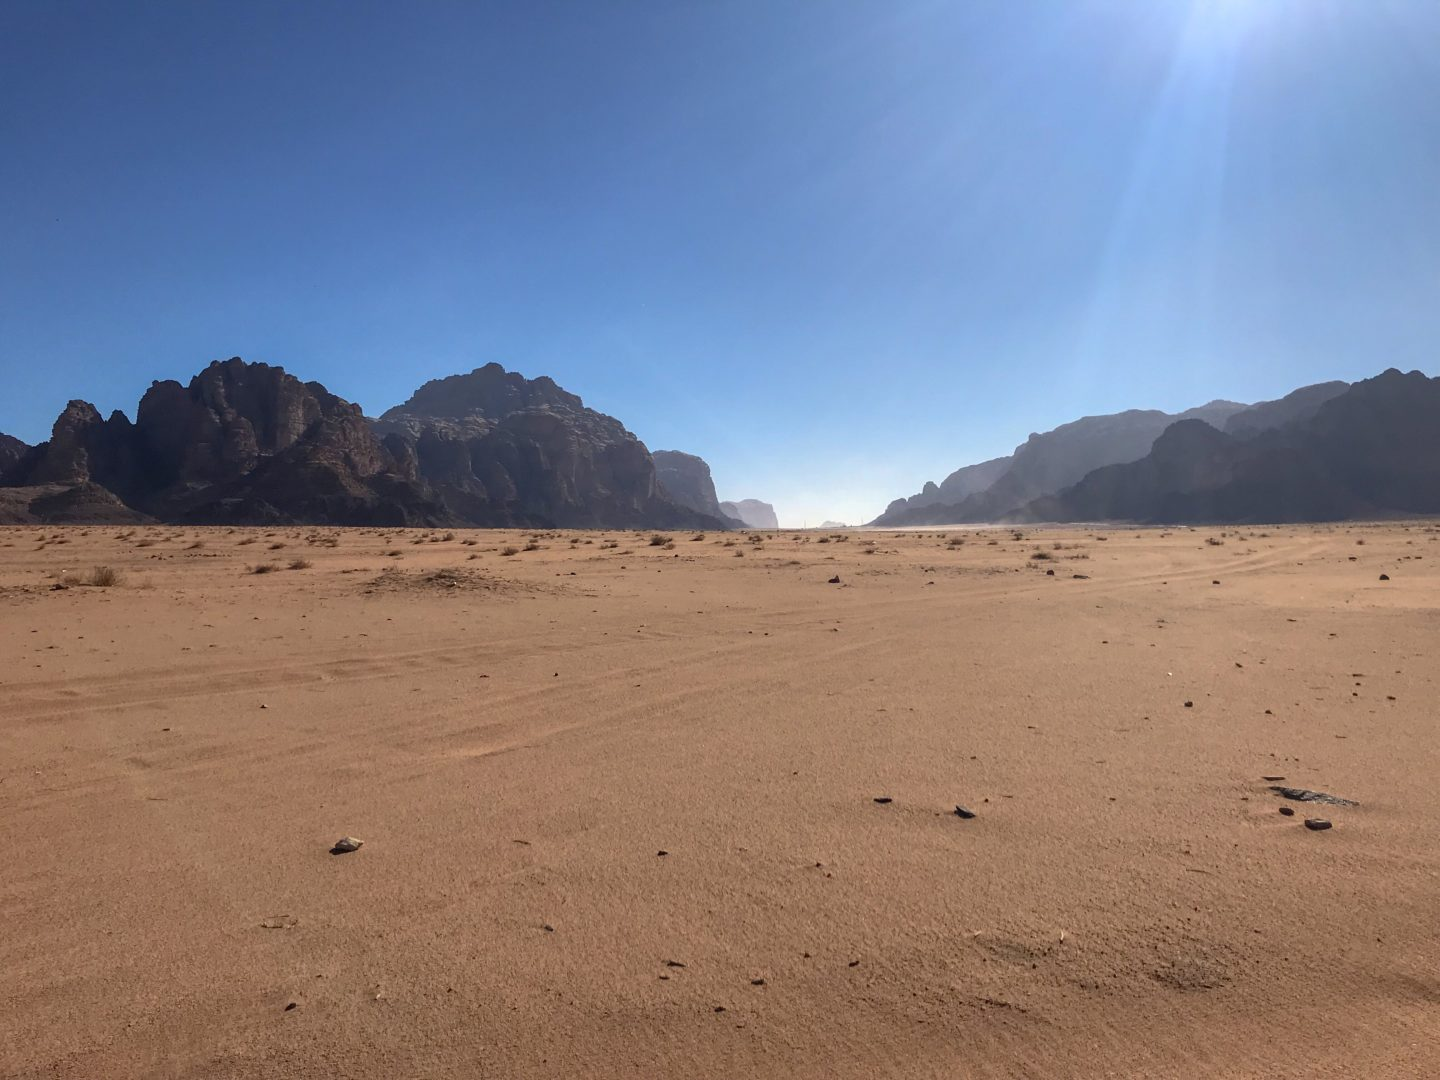 Vast expanse of desert and sandstone topography - Jordan Adventures Part 4 - Wadi Rum